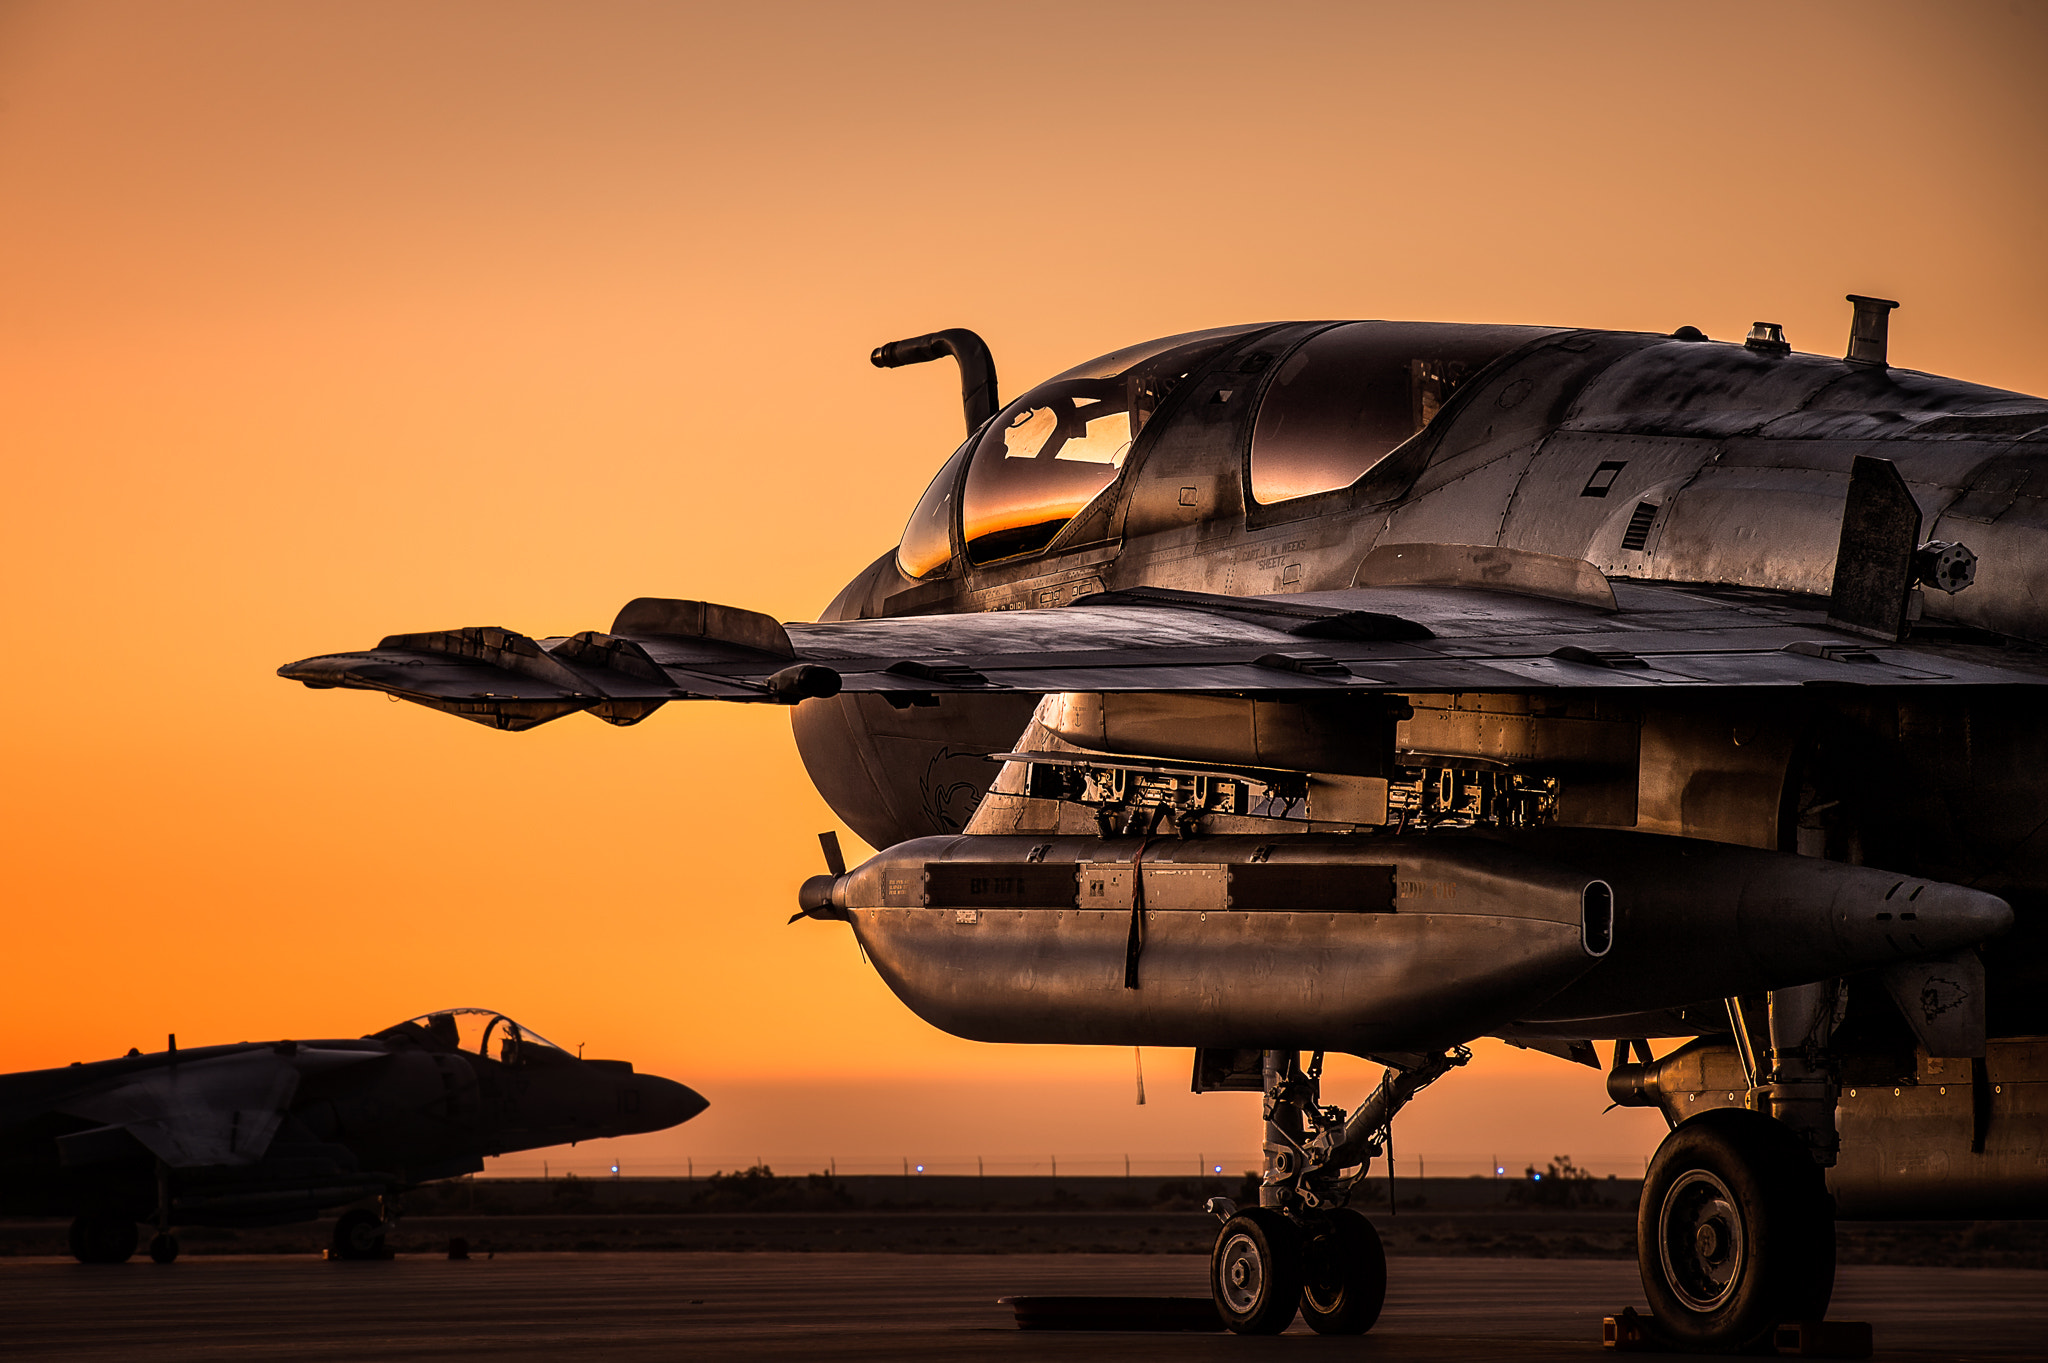 Photograph Prowler at rest by Tony Granata on 500px